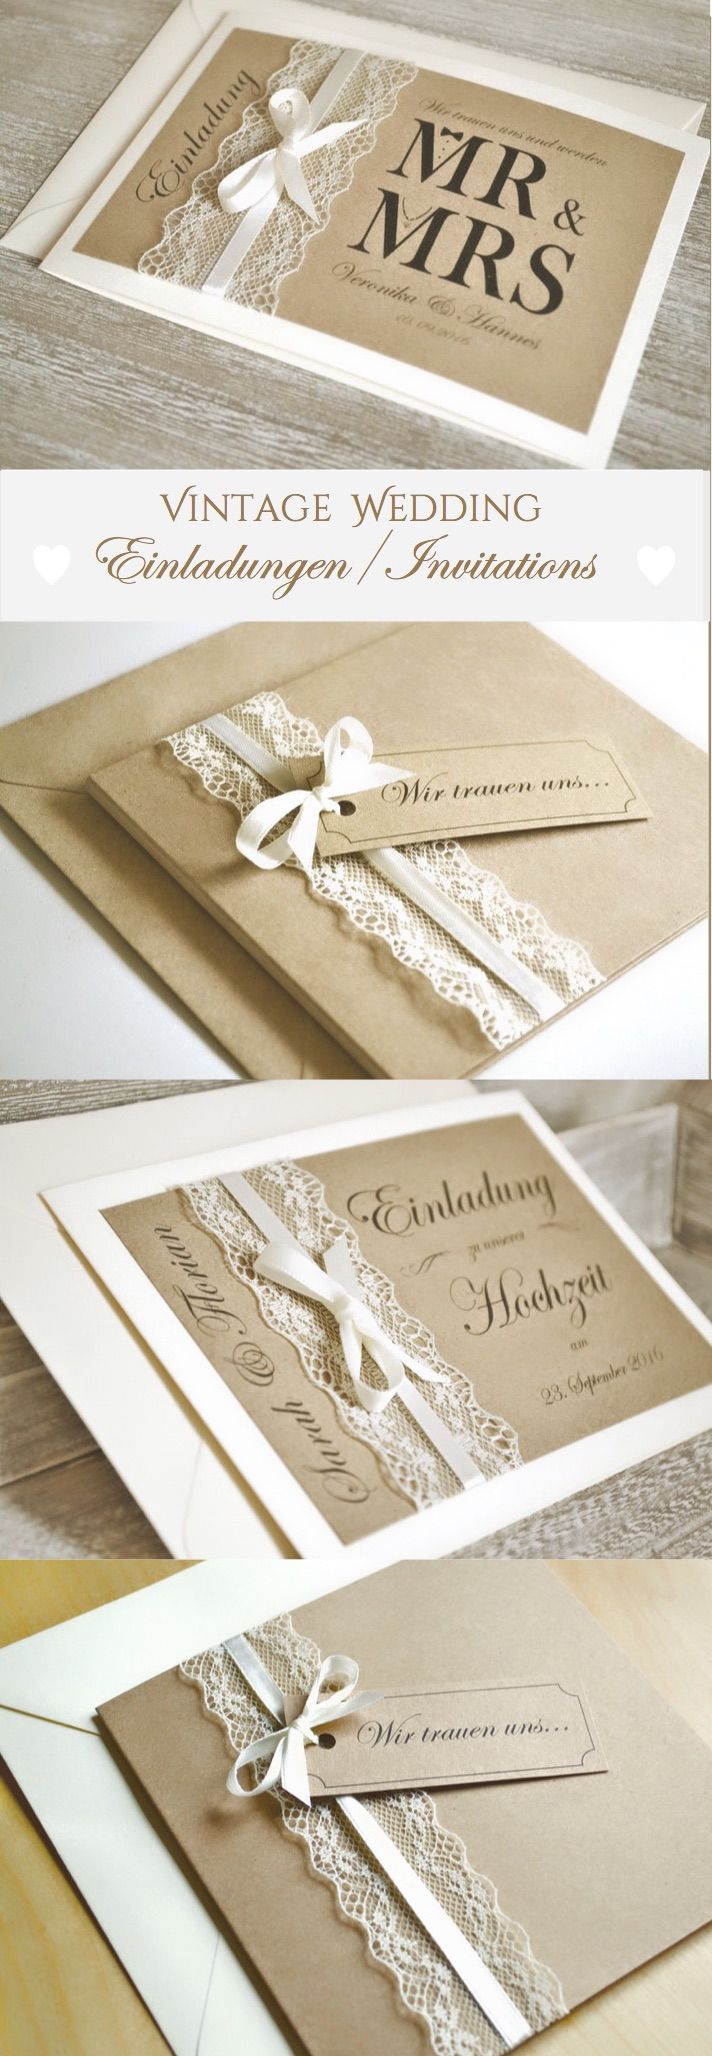 Wedding Invitation cards Mr & Mrs-with Lace and kraft paper Vintage/boho